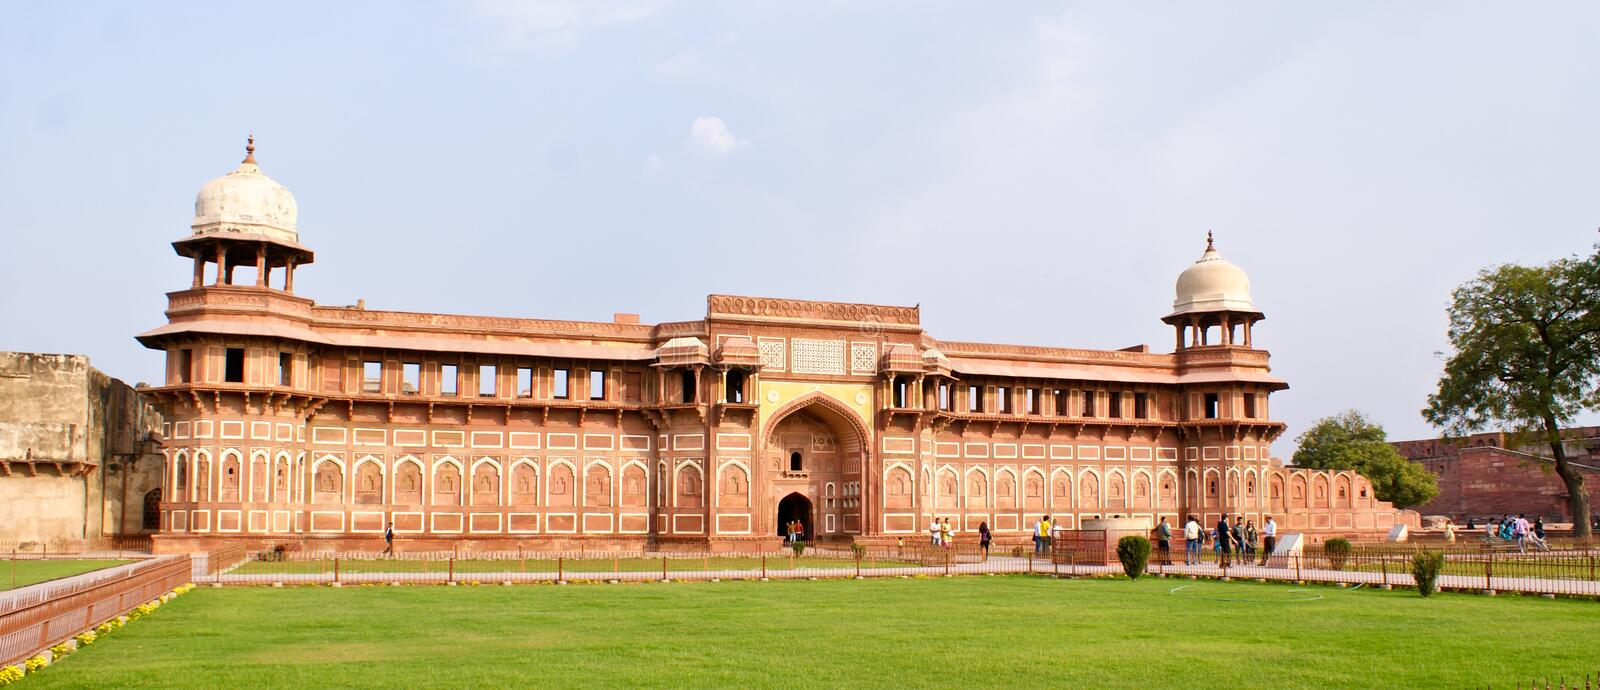 Jahangiri Mahal ,a palace in Agra Fort,Agra,India royalty free stock photography